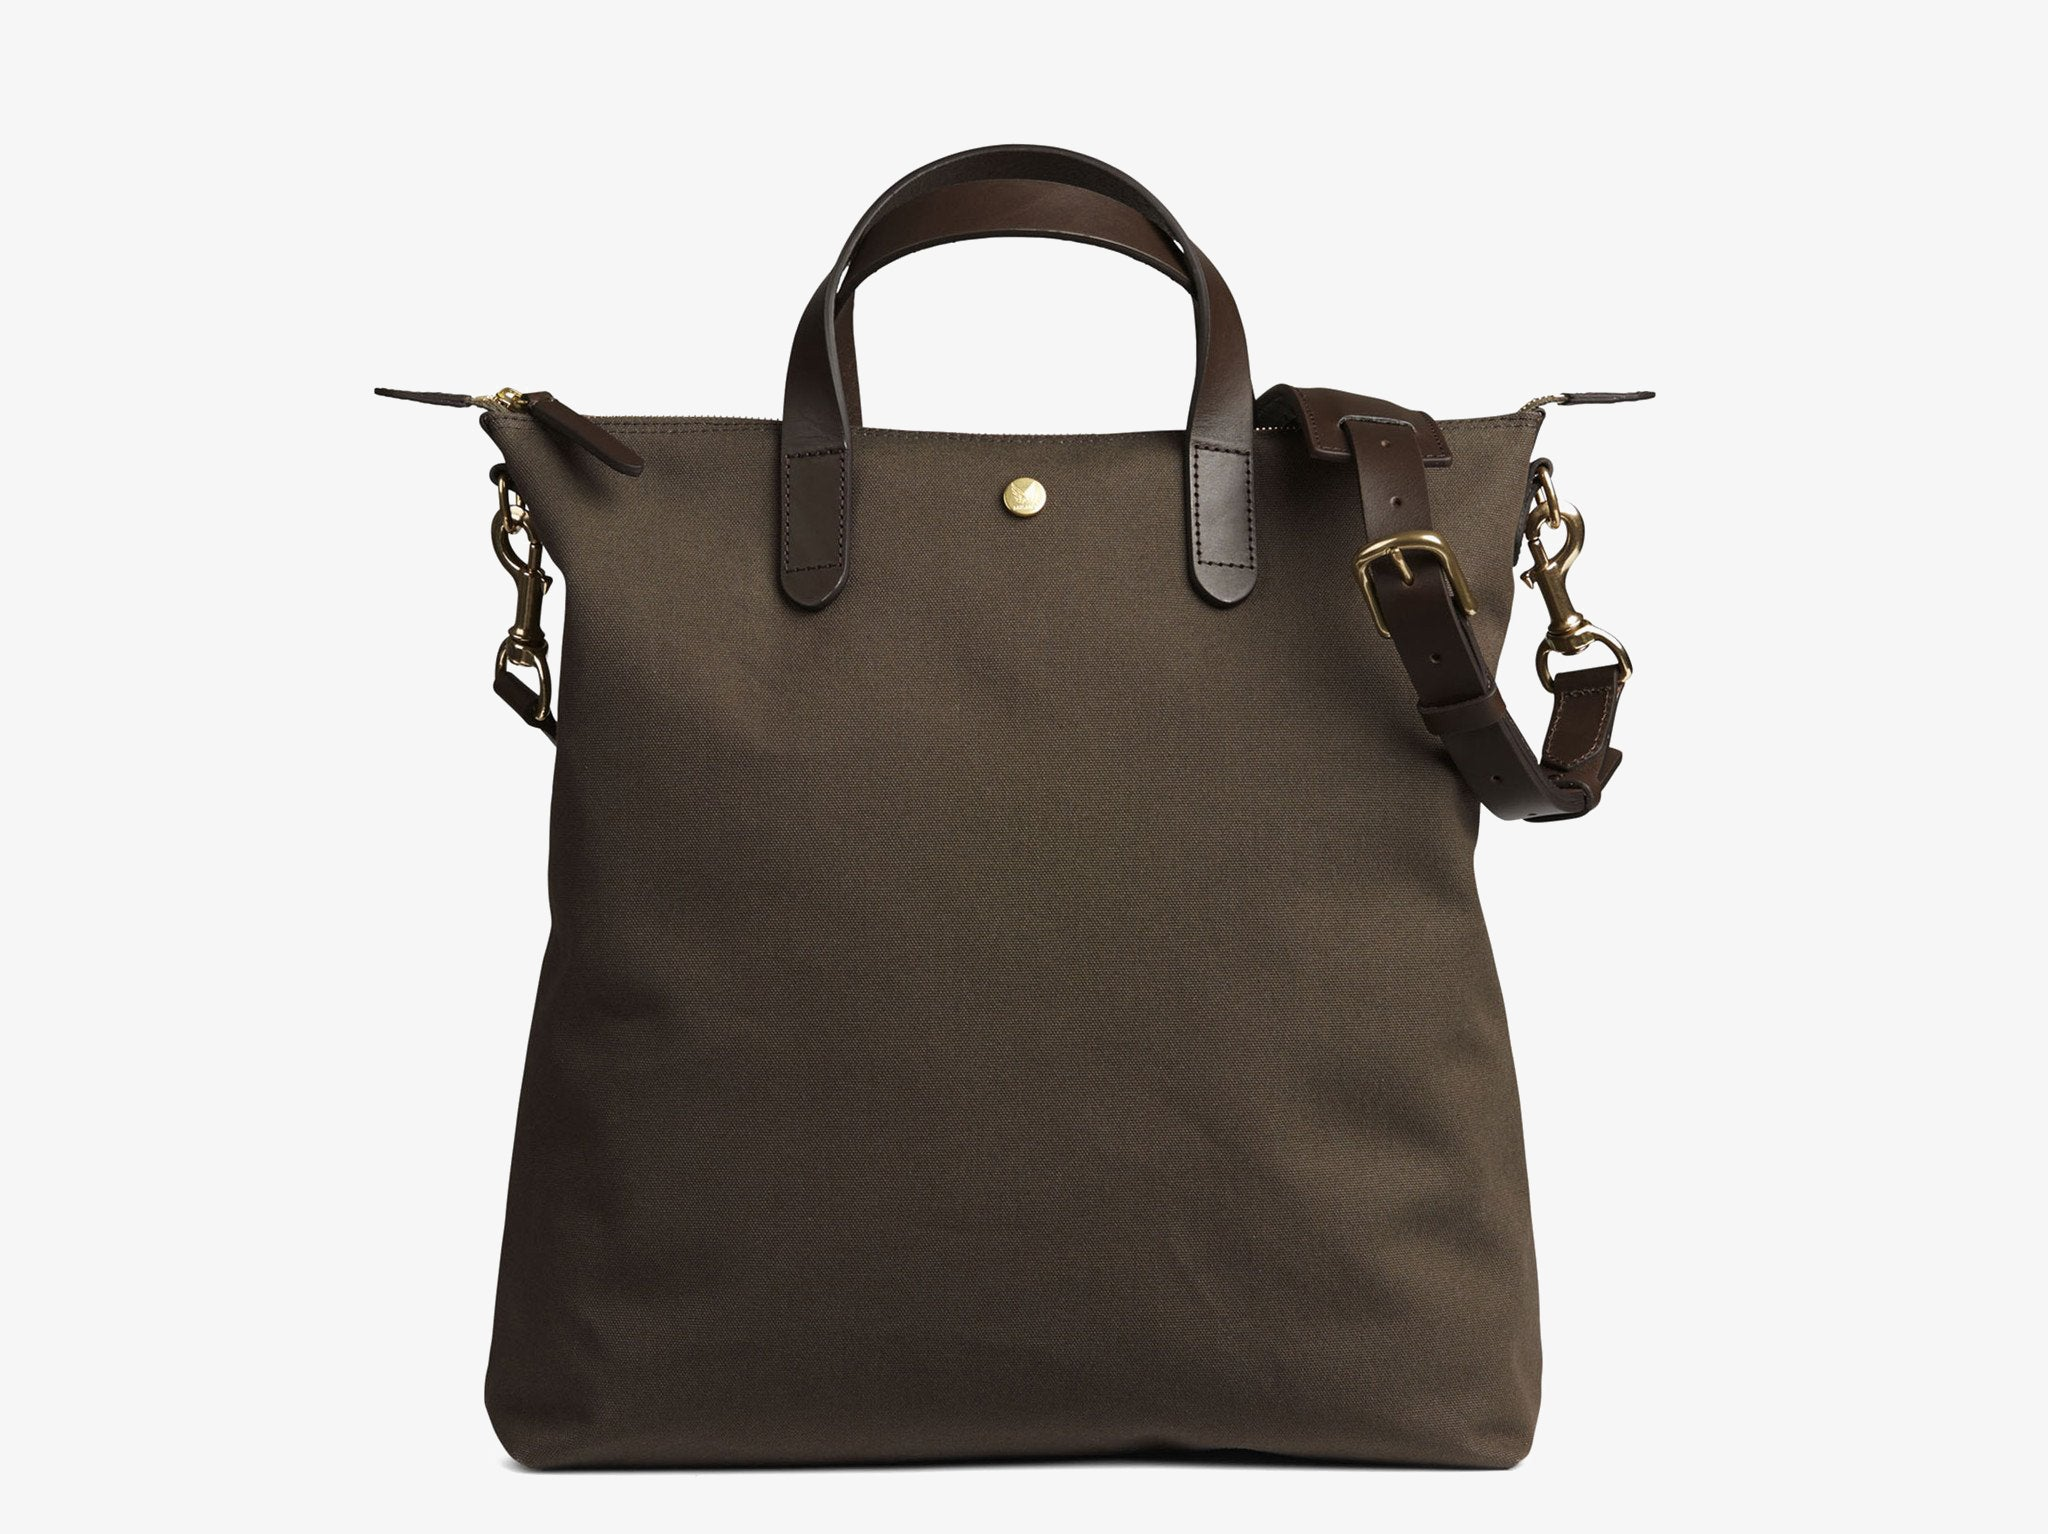 814d8e6bc6 M S Shopper – Army Dark Brown - Tote bag - Mismo ...